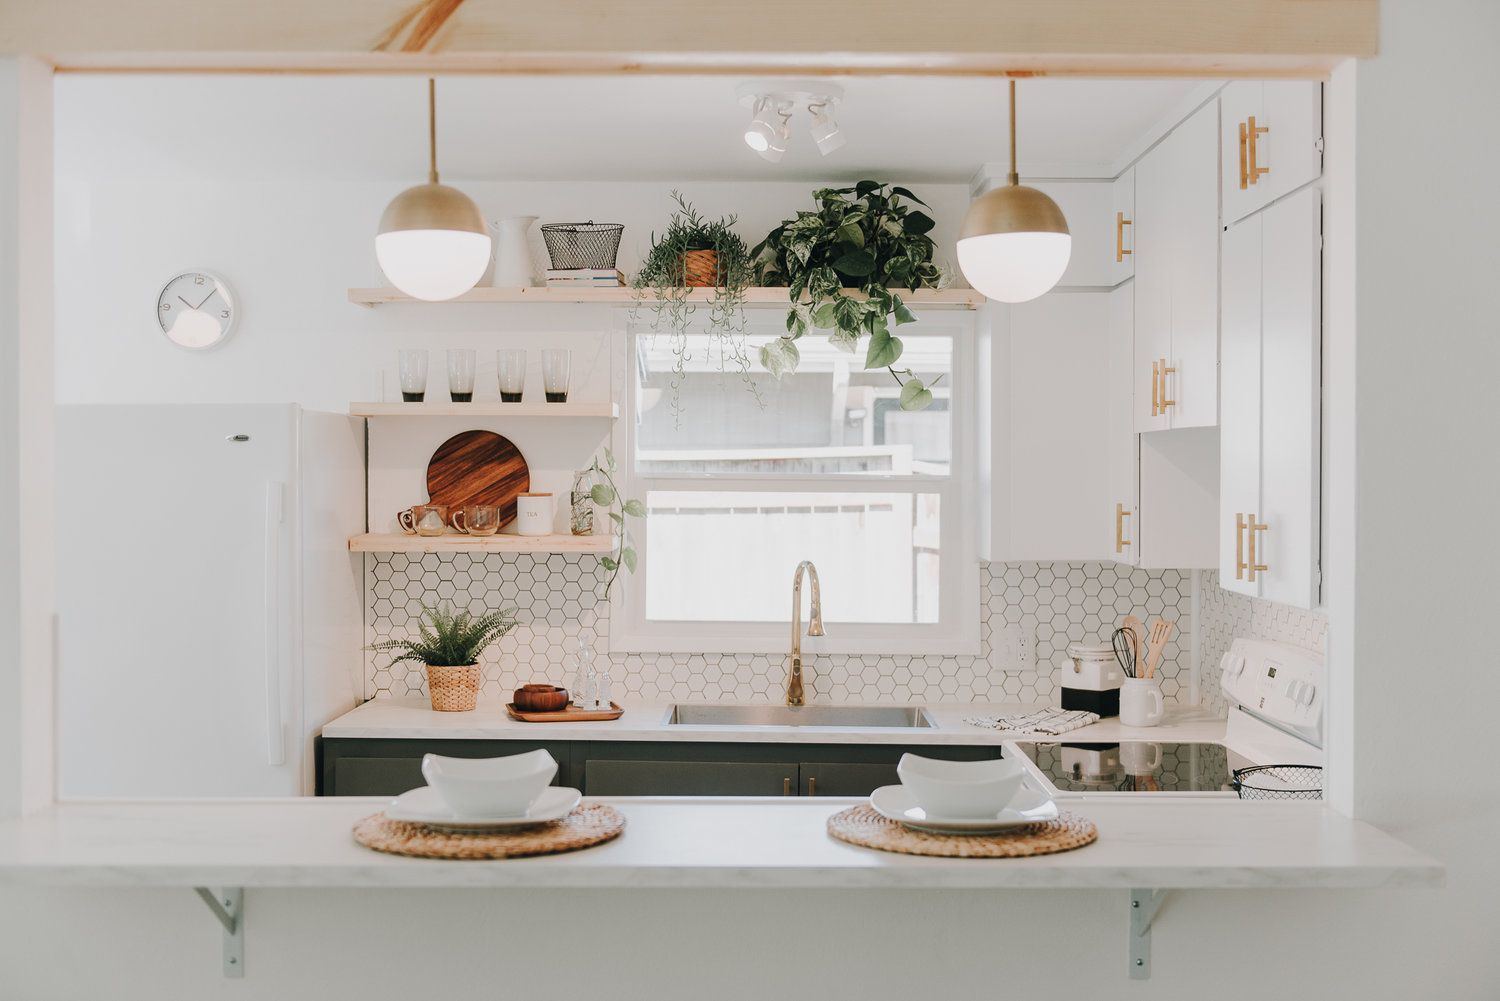 Small renovated kitchen with plants